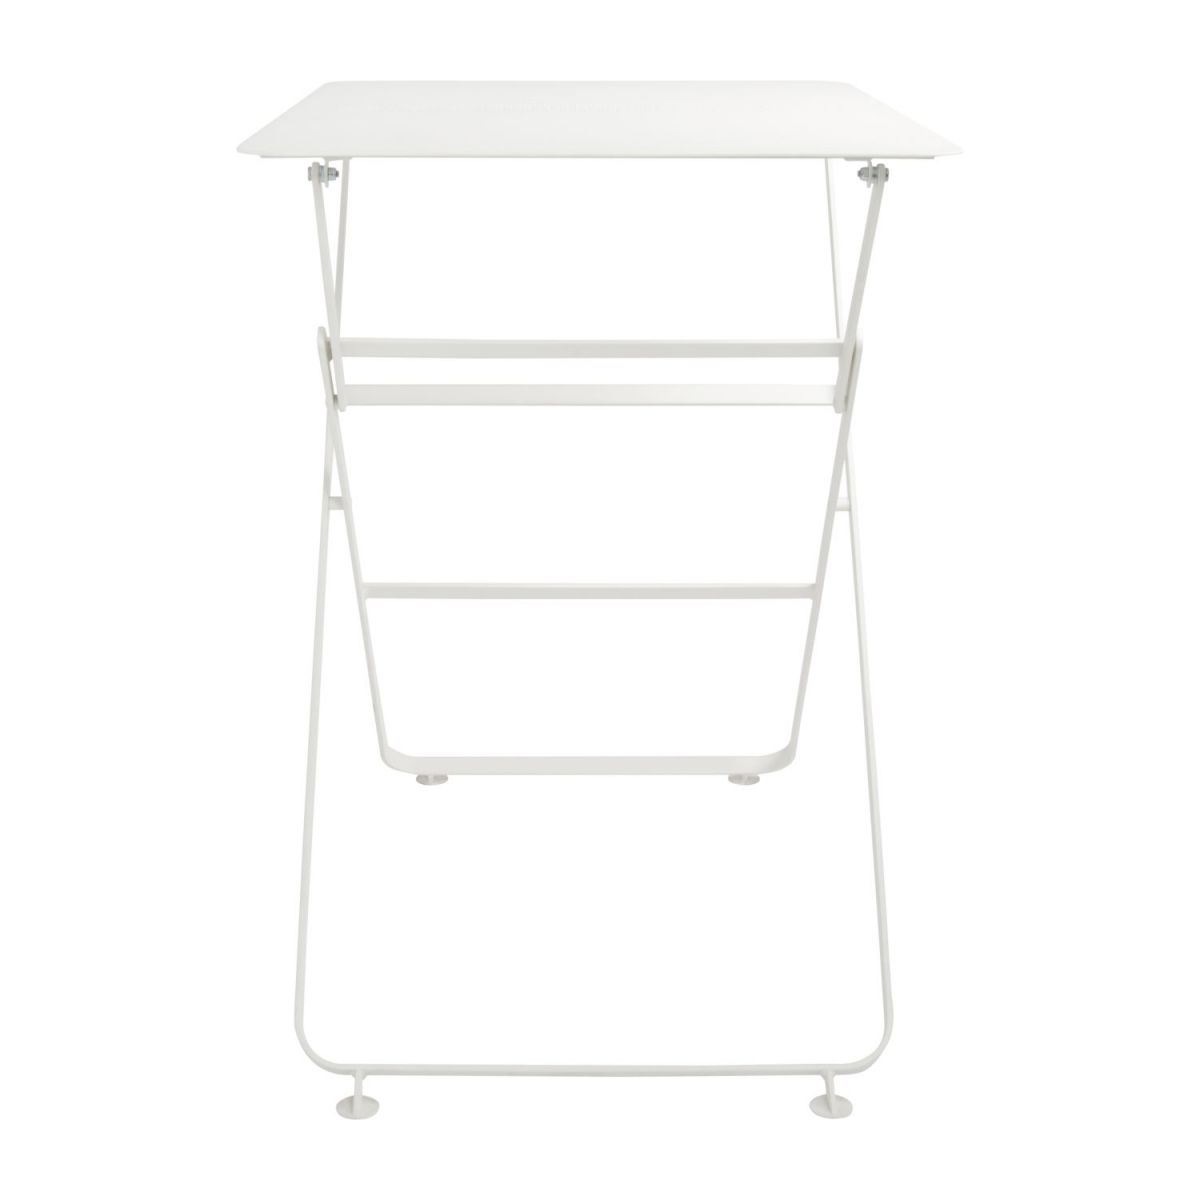 Folding table made of metal, white n°5